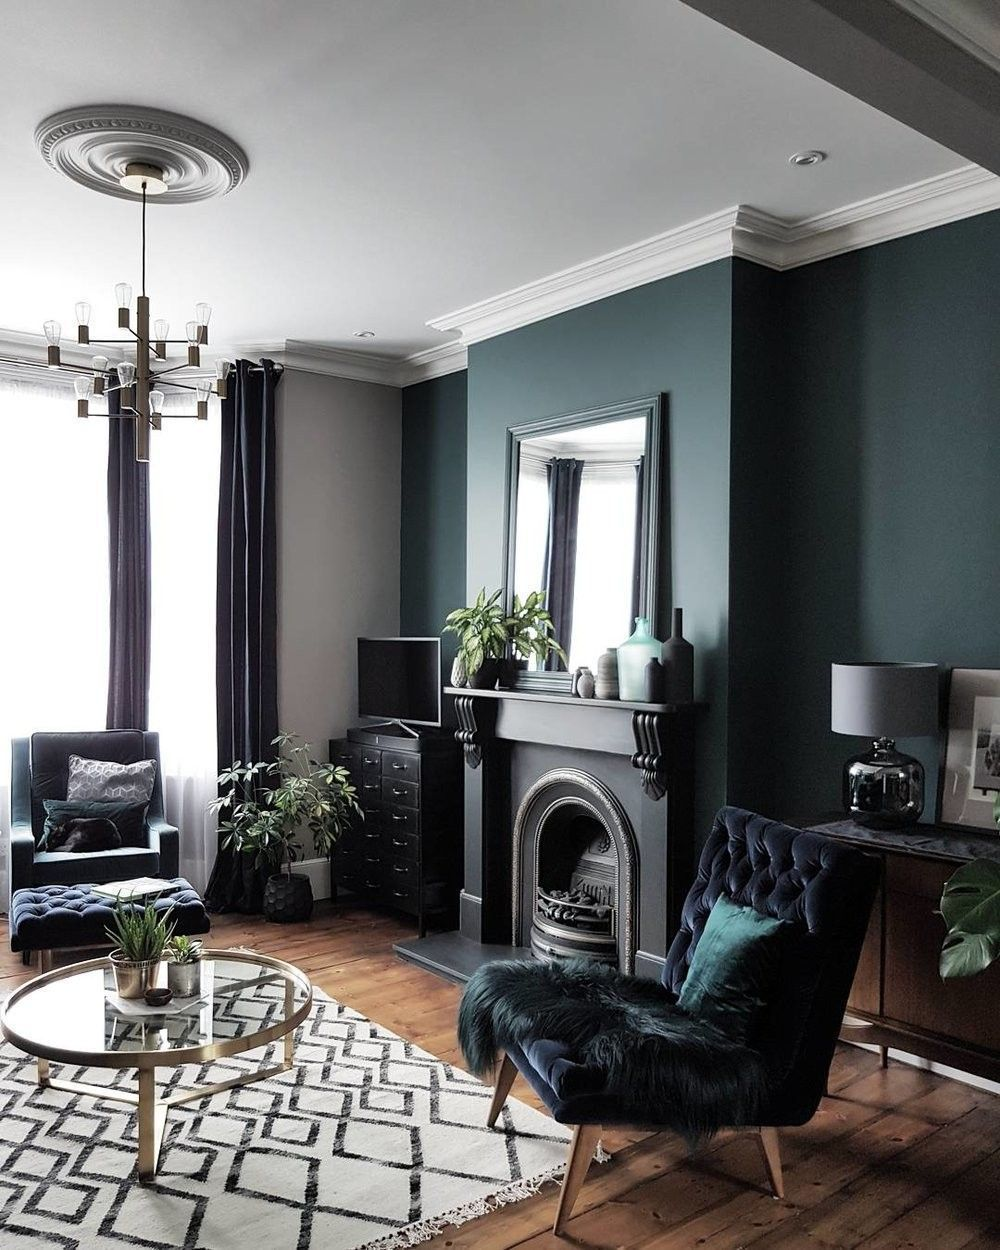 Diy Living Room Design Ideas With 21 Different Living Room Ideas You Will Be Inspired To Make Refined Dark Living Rooms Blue Living Room Victorian Living Room